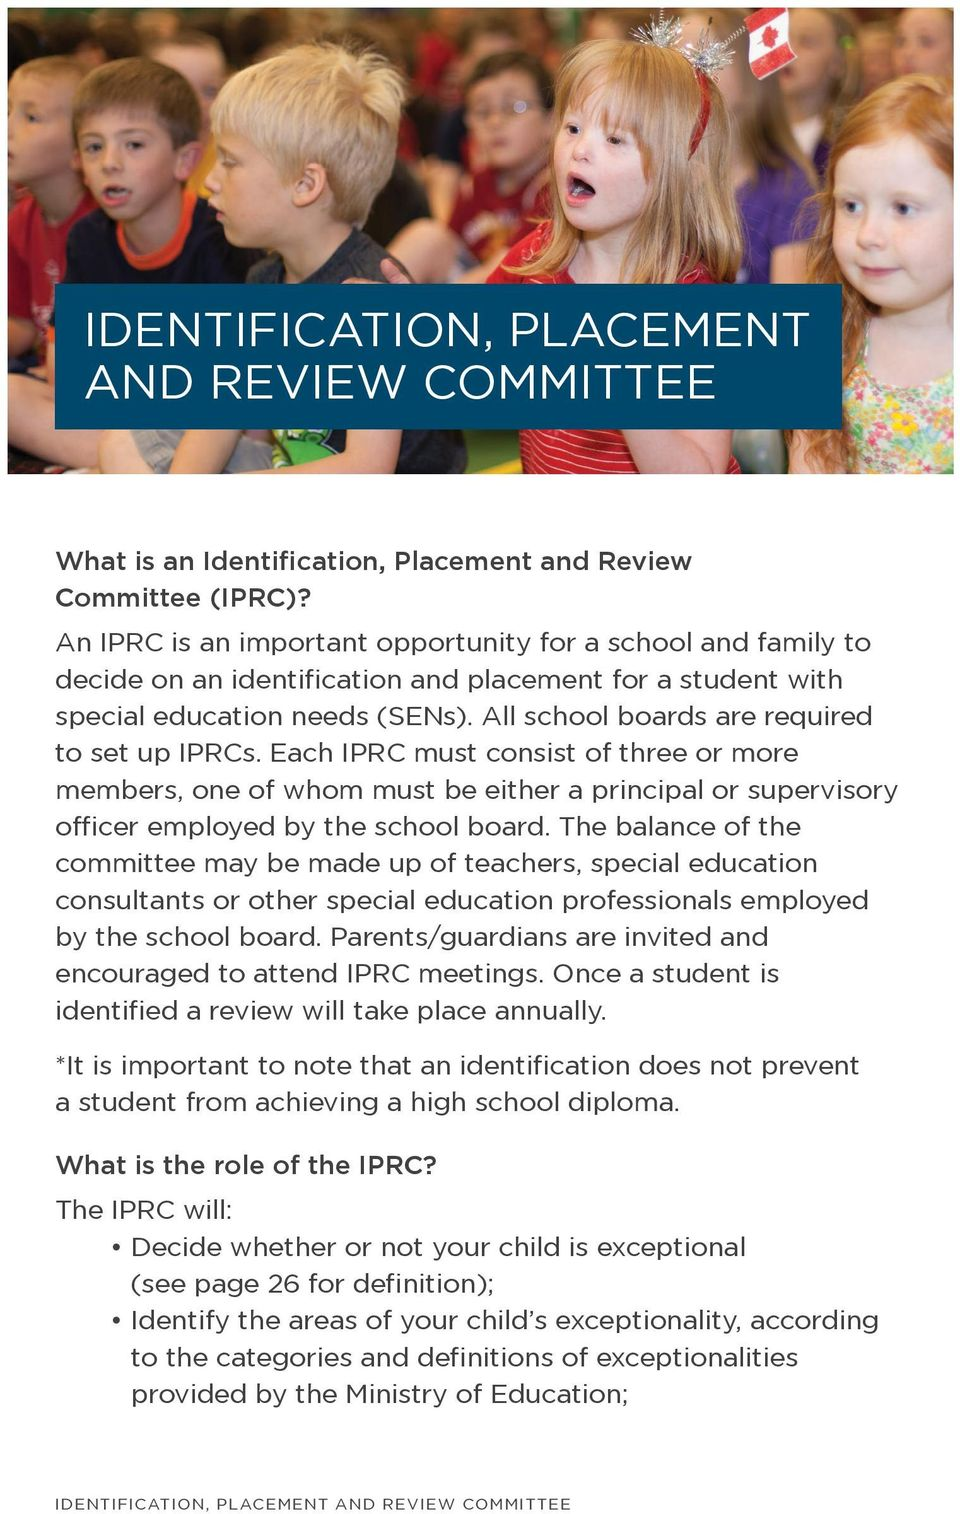 All school boards are required to set up IPRCs. Each IPRC must consist of three or more members, one of whom must be either a principal or supervisory officer employed by the school board.